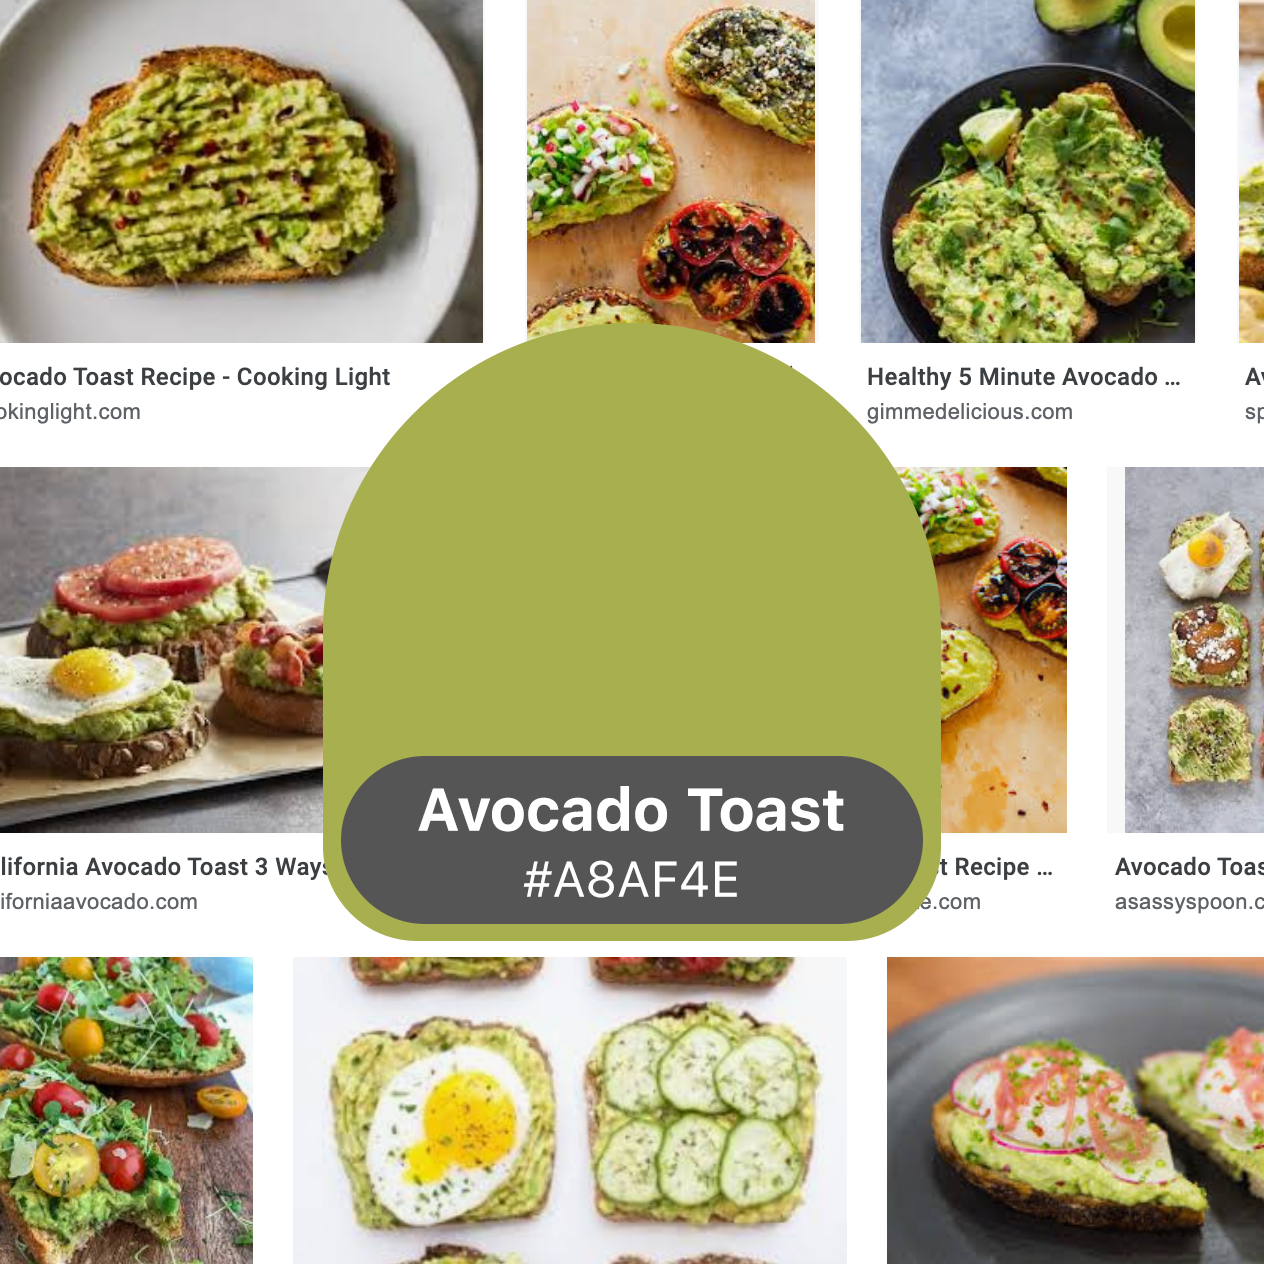 Introducing Avocado Toast